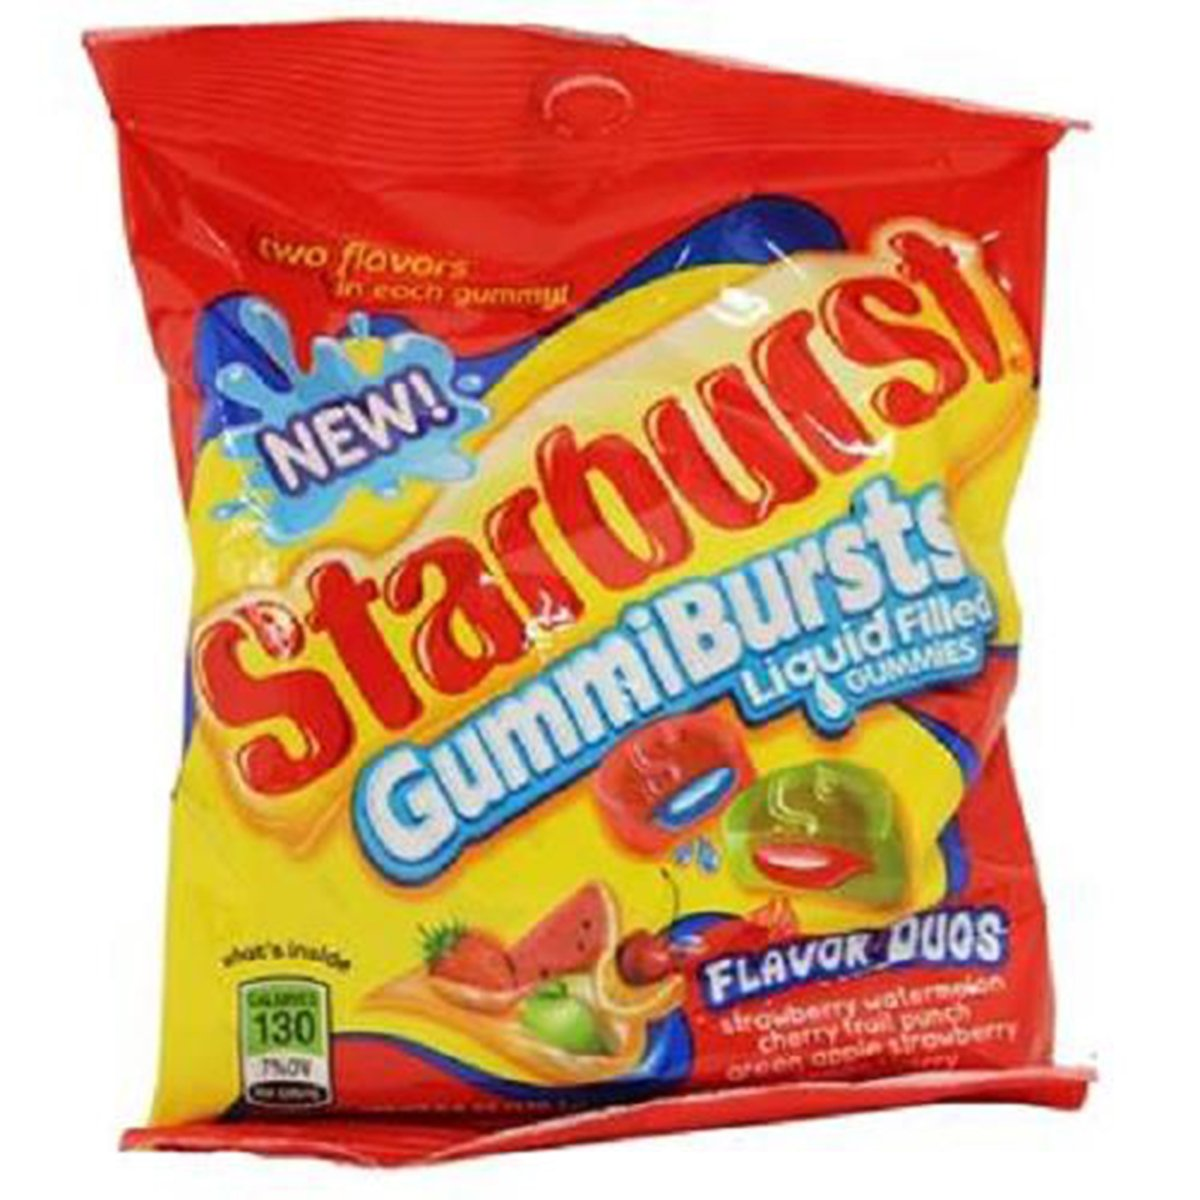 Product Of Starburst, Gummibursts Duos, Count 12 (6 oz) - Sugar Candy / Grab Varieties & Flavors by Product Of Starburst